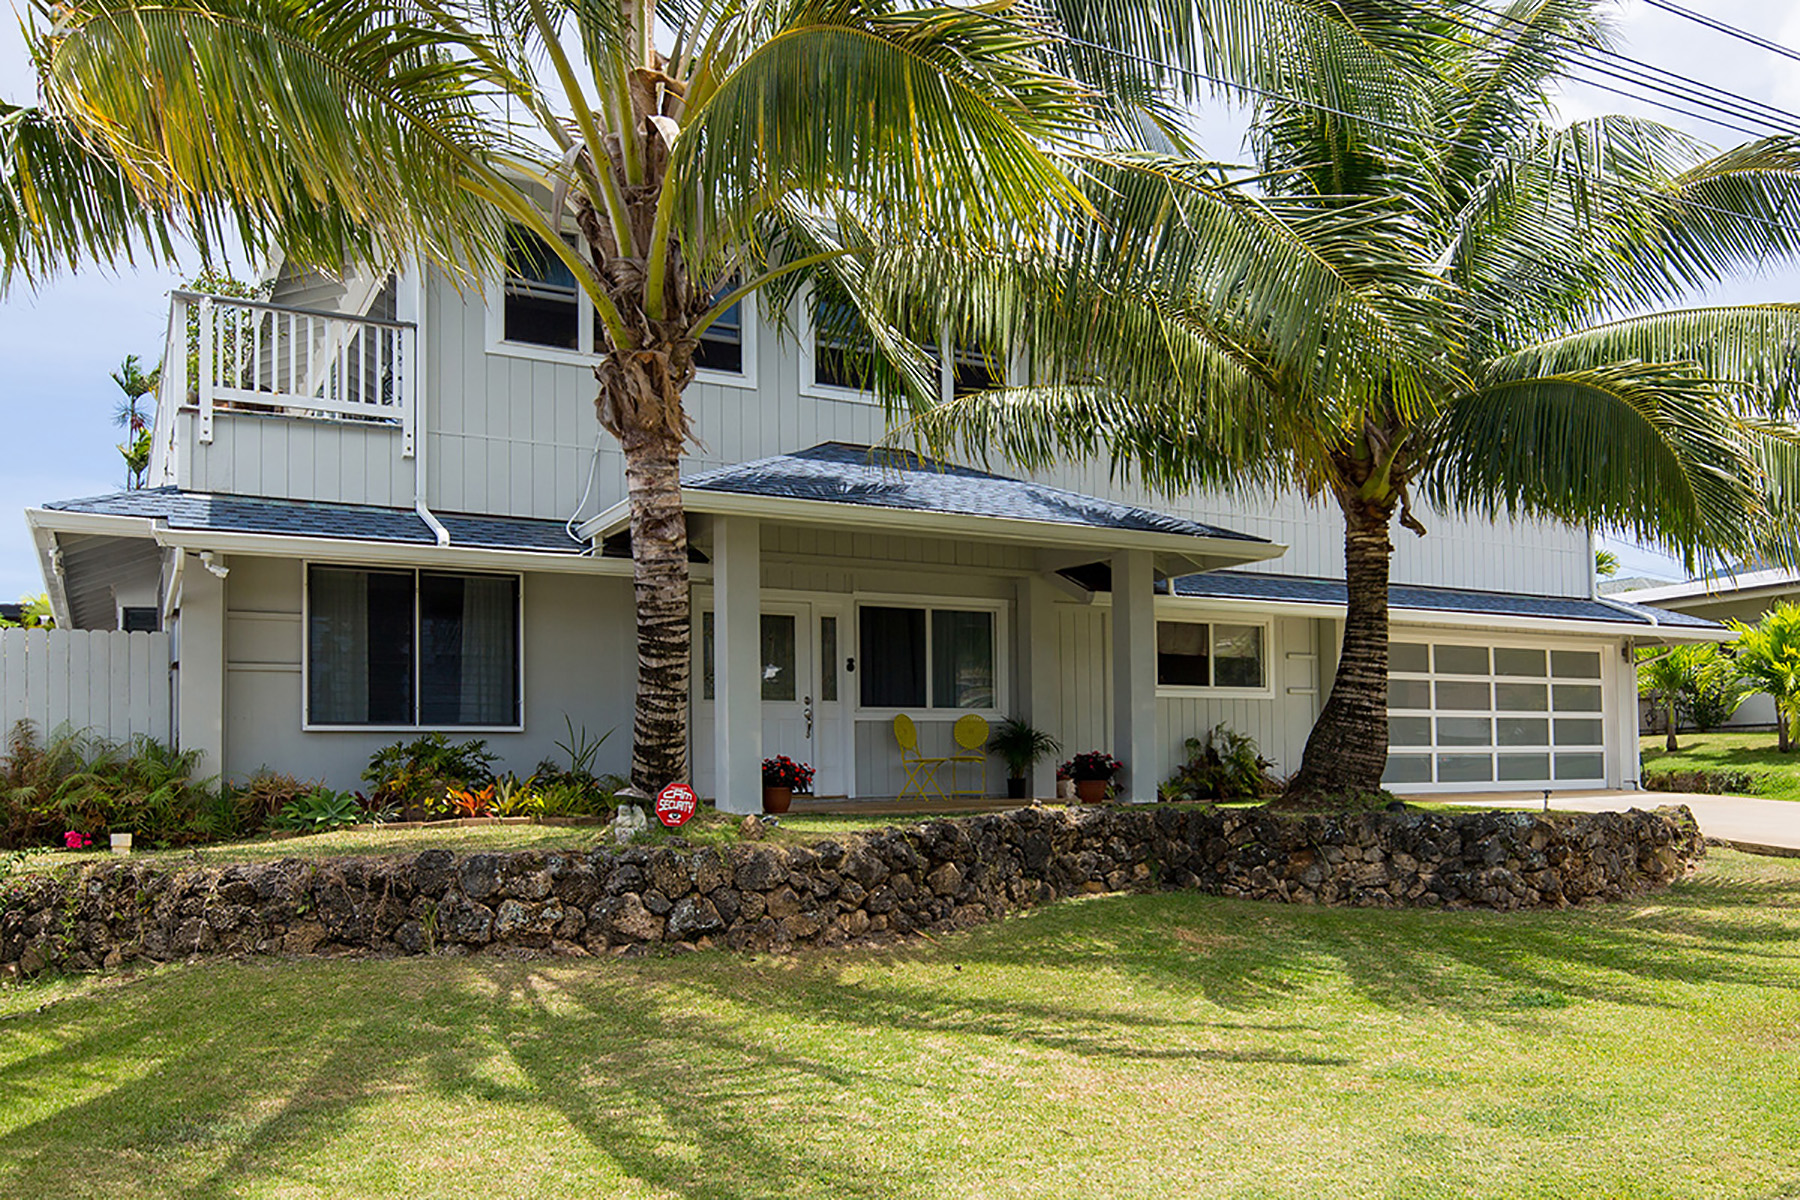 Casa Unifamiliar por un Venta en Luxury by the Sea 45-052 Ka Hanahou Place Kaneohe, Hawaii 96744 Estados Unidos